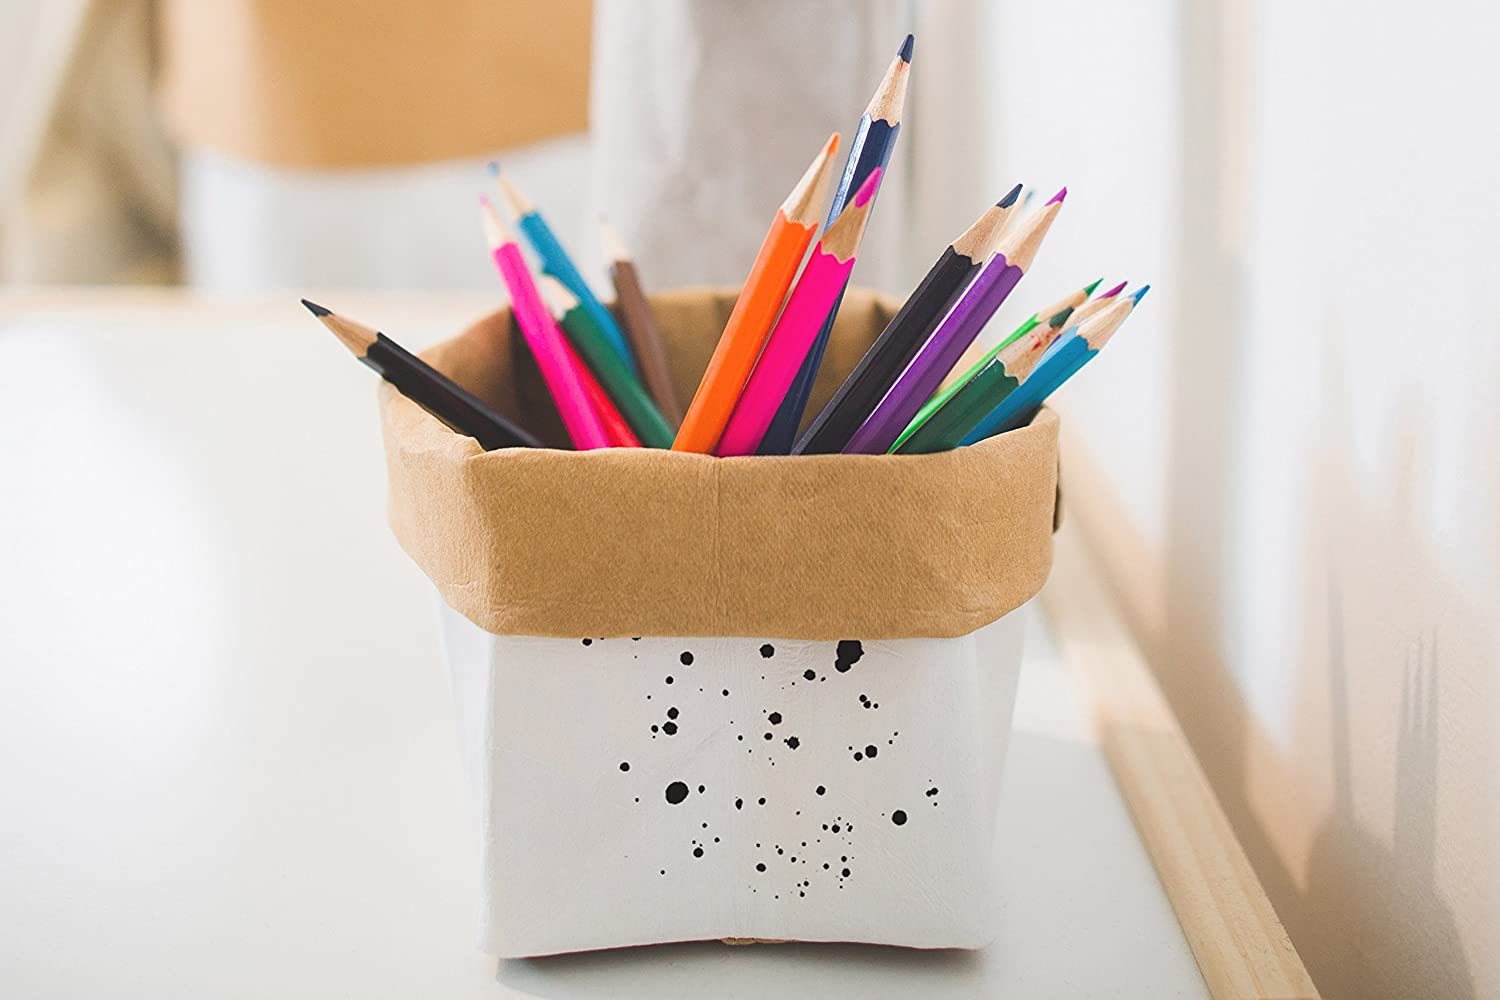 Kids Art Supply Box Room Hair Pencil Accesso Storage Max 73% OFF Long-awaited Bags